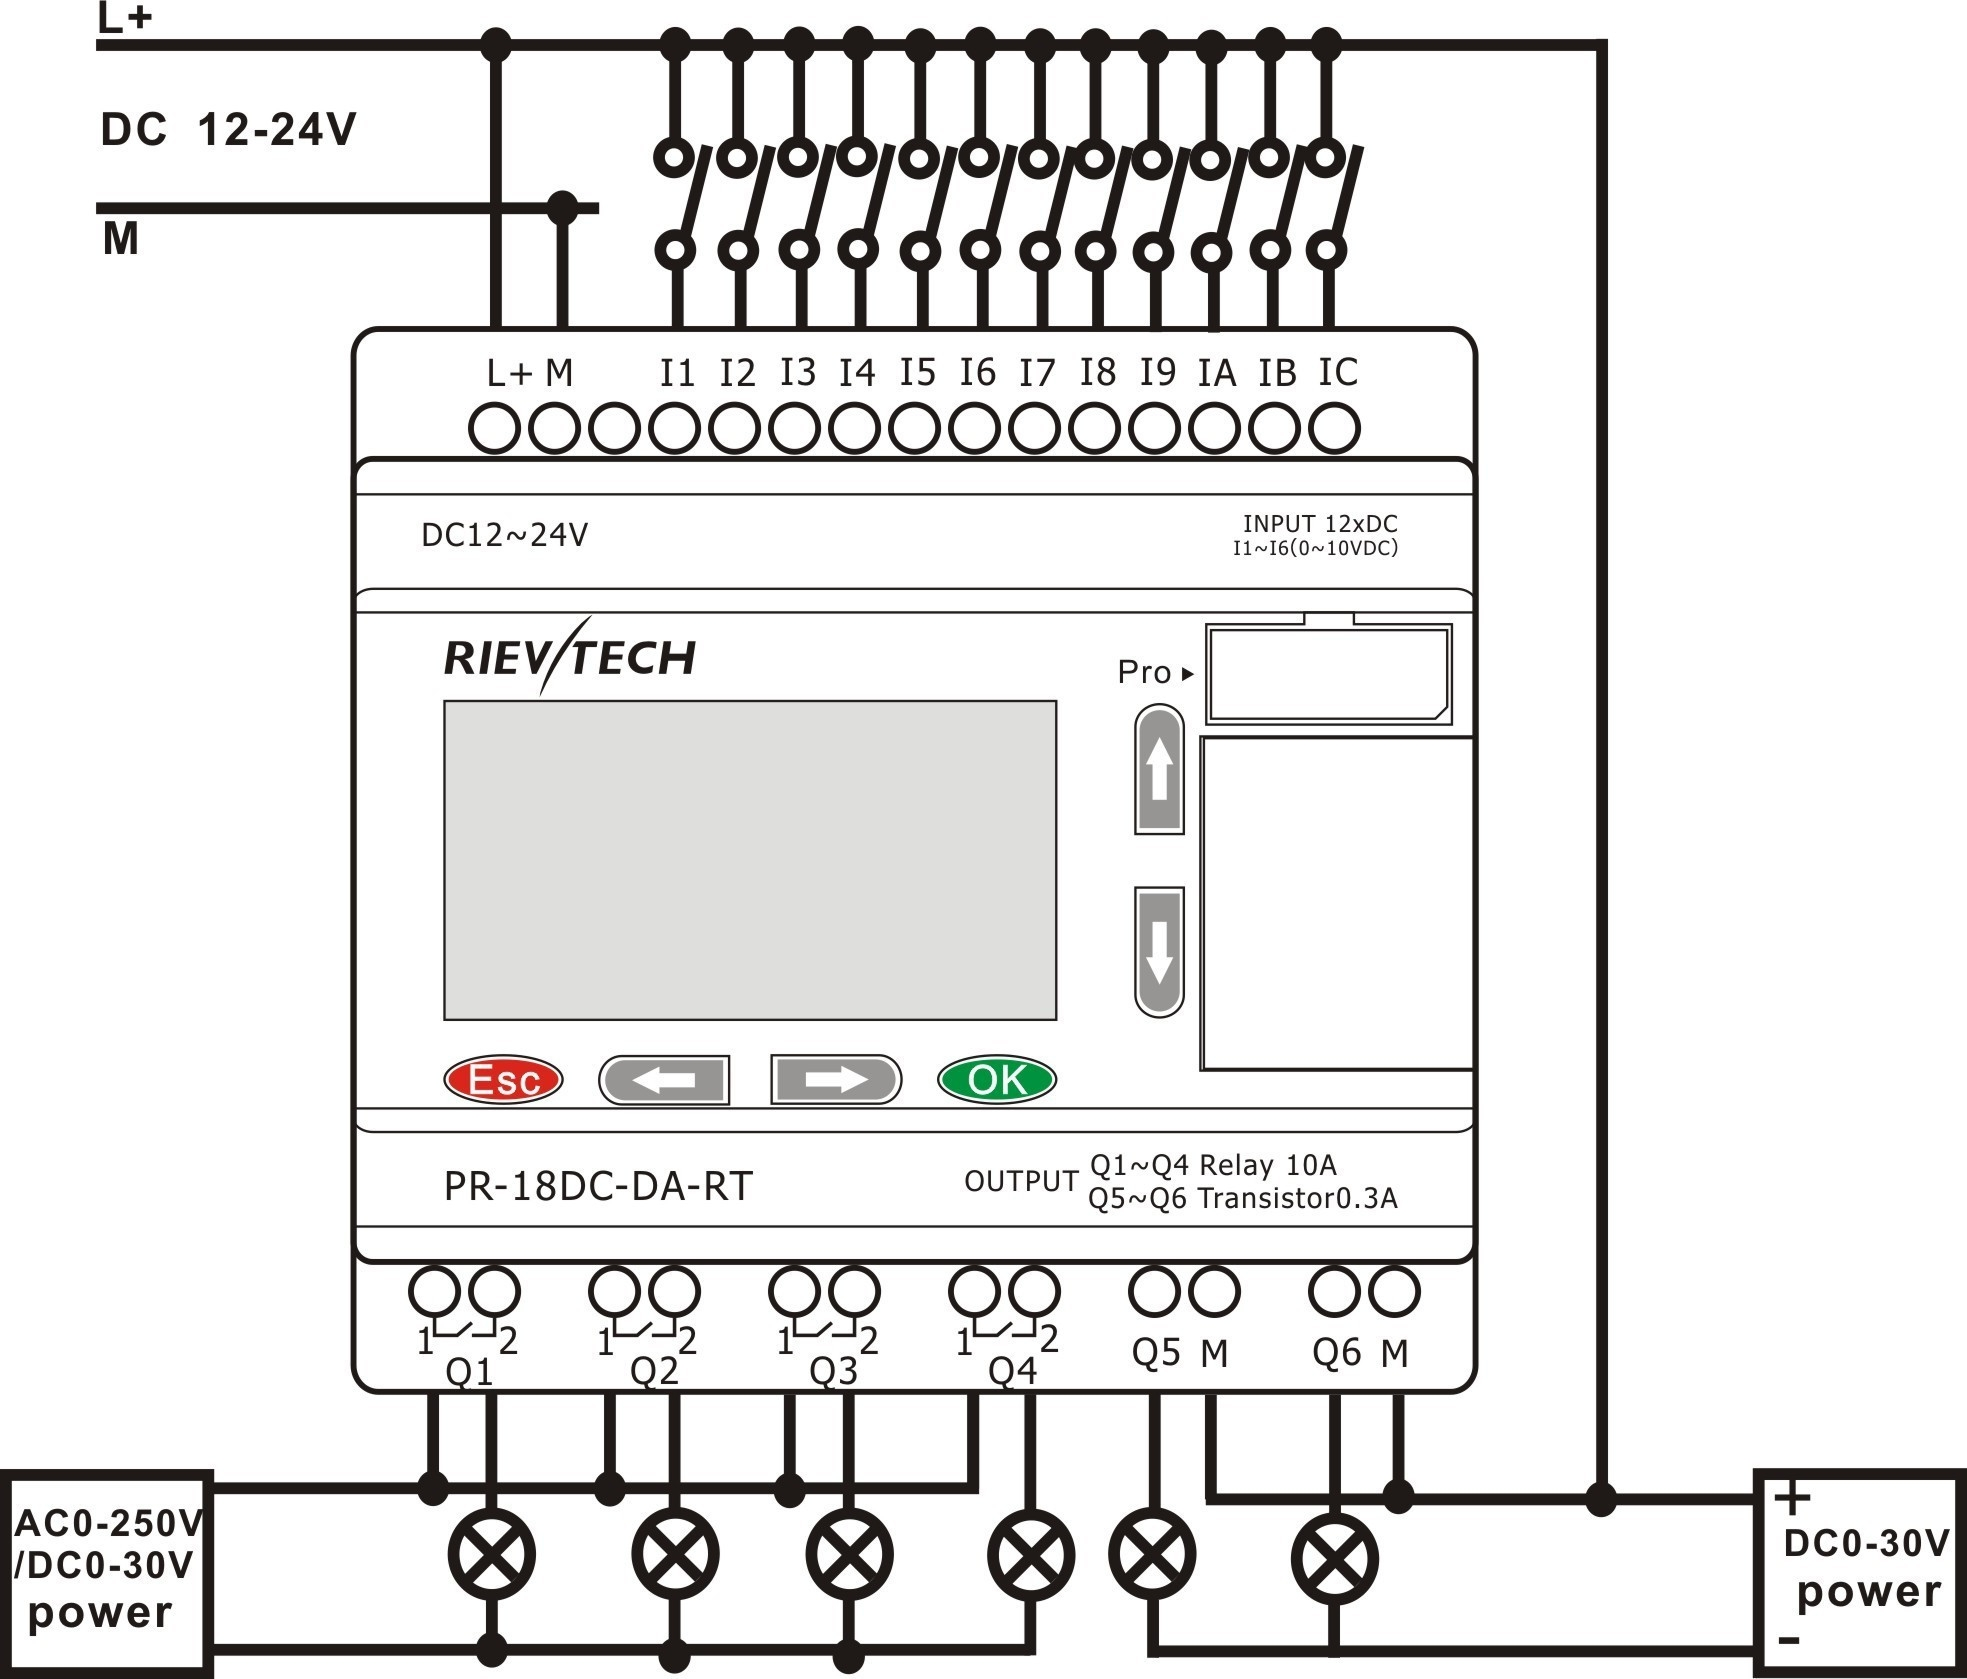 plc panel wiring diagram pdf free wiring diagram plc wiring diagrams pdf  plc panel wiring diagram